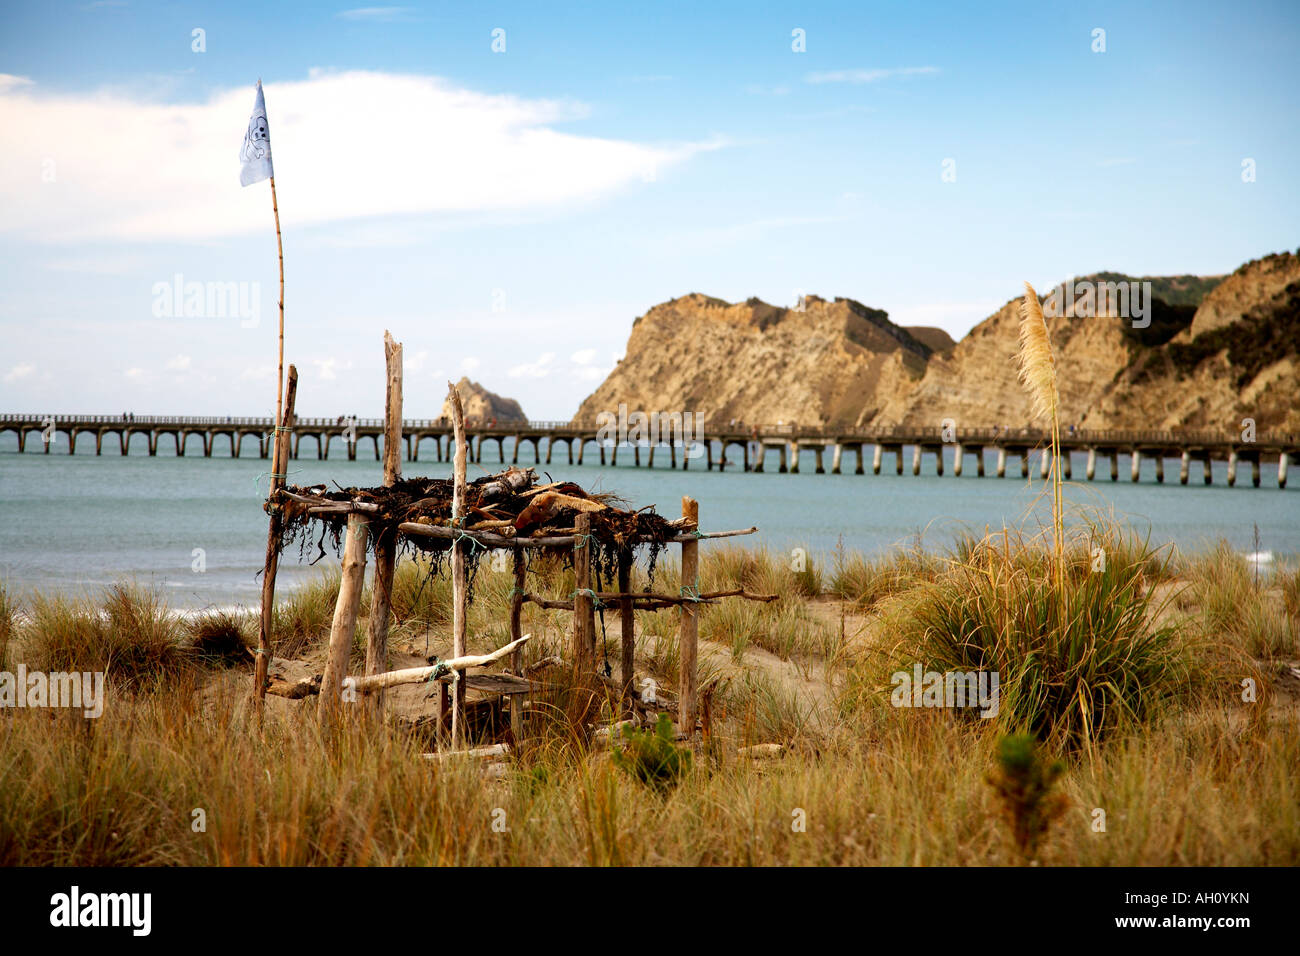 pirate hut made in sand dunes at tolaga bay - Stock Image